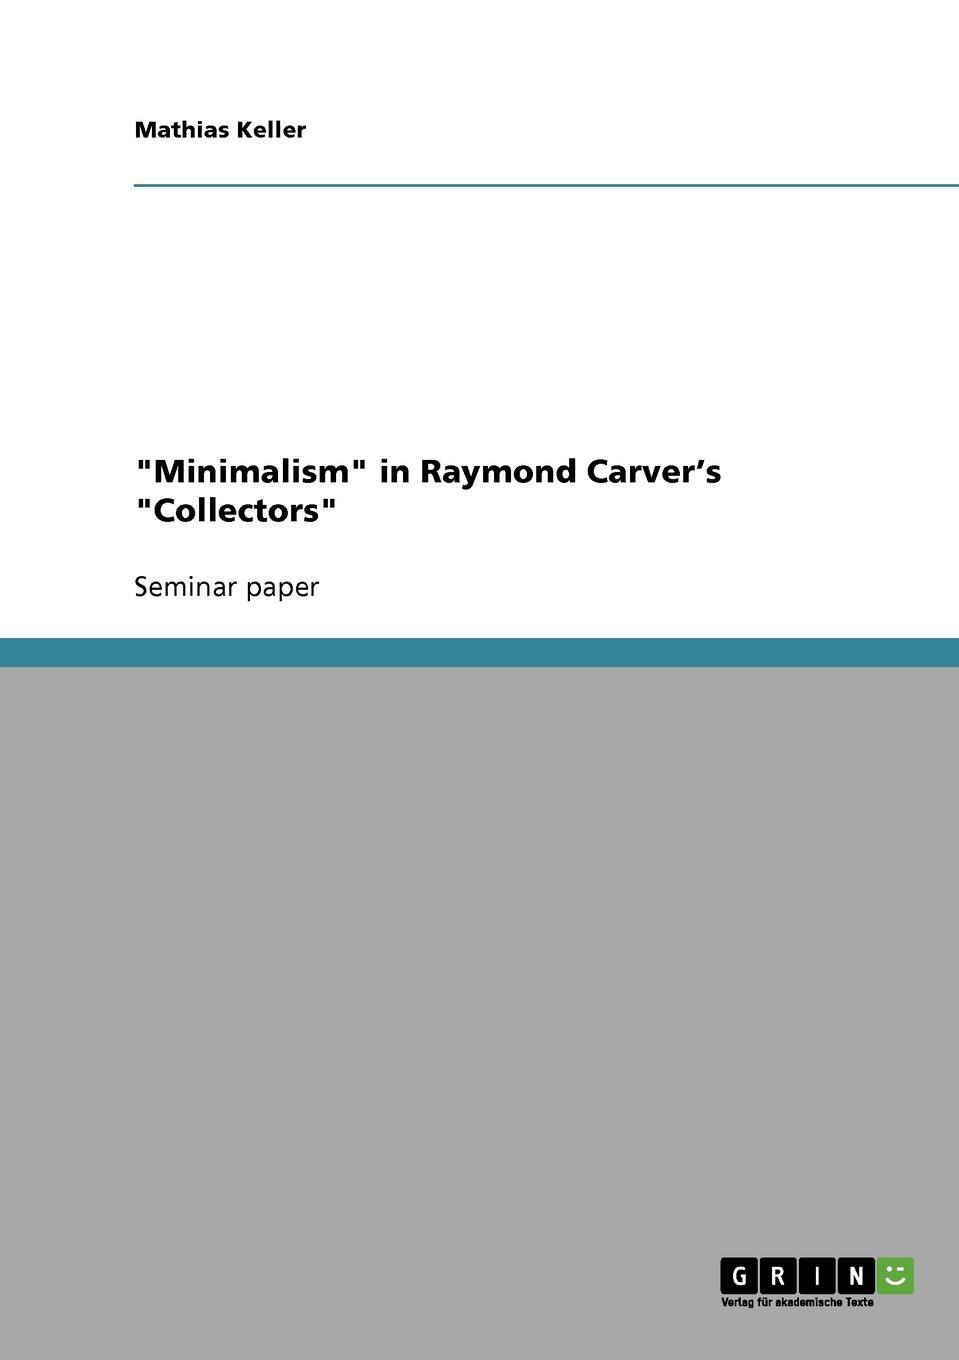 Mathias Keller Minimalism in Raymond Carver.s Collectors malcolm kemp extreme events robust portfolio construction in the presence of fat tails isbn 9780470976791